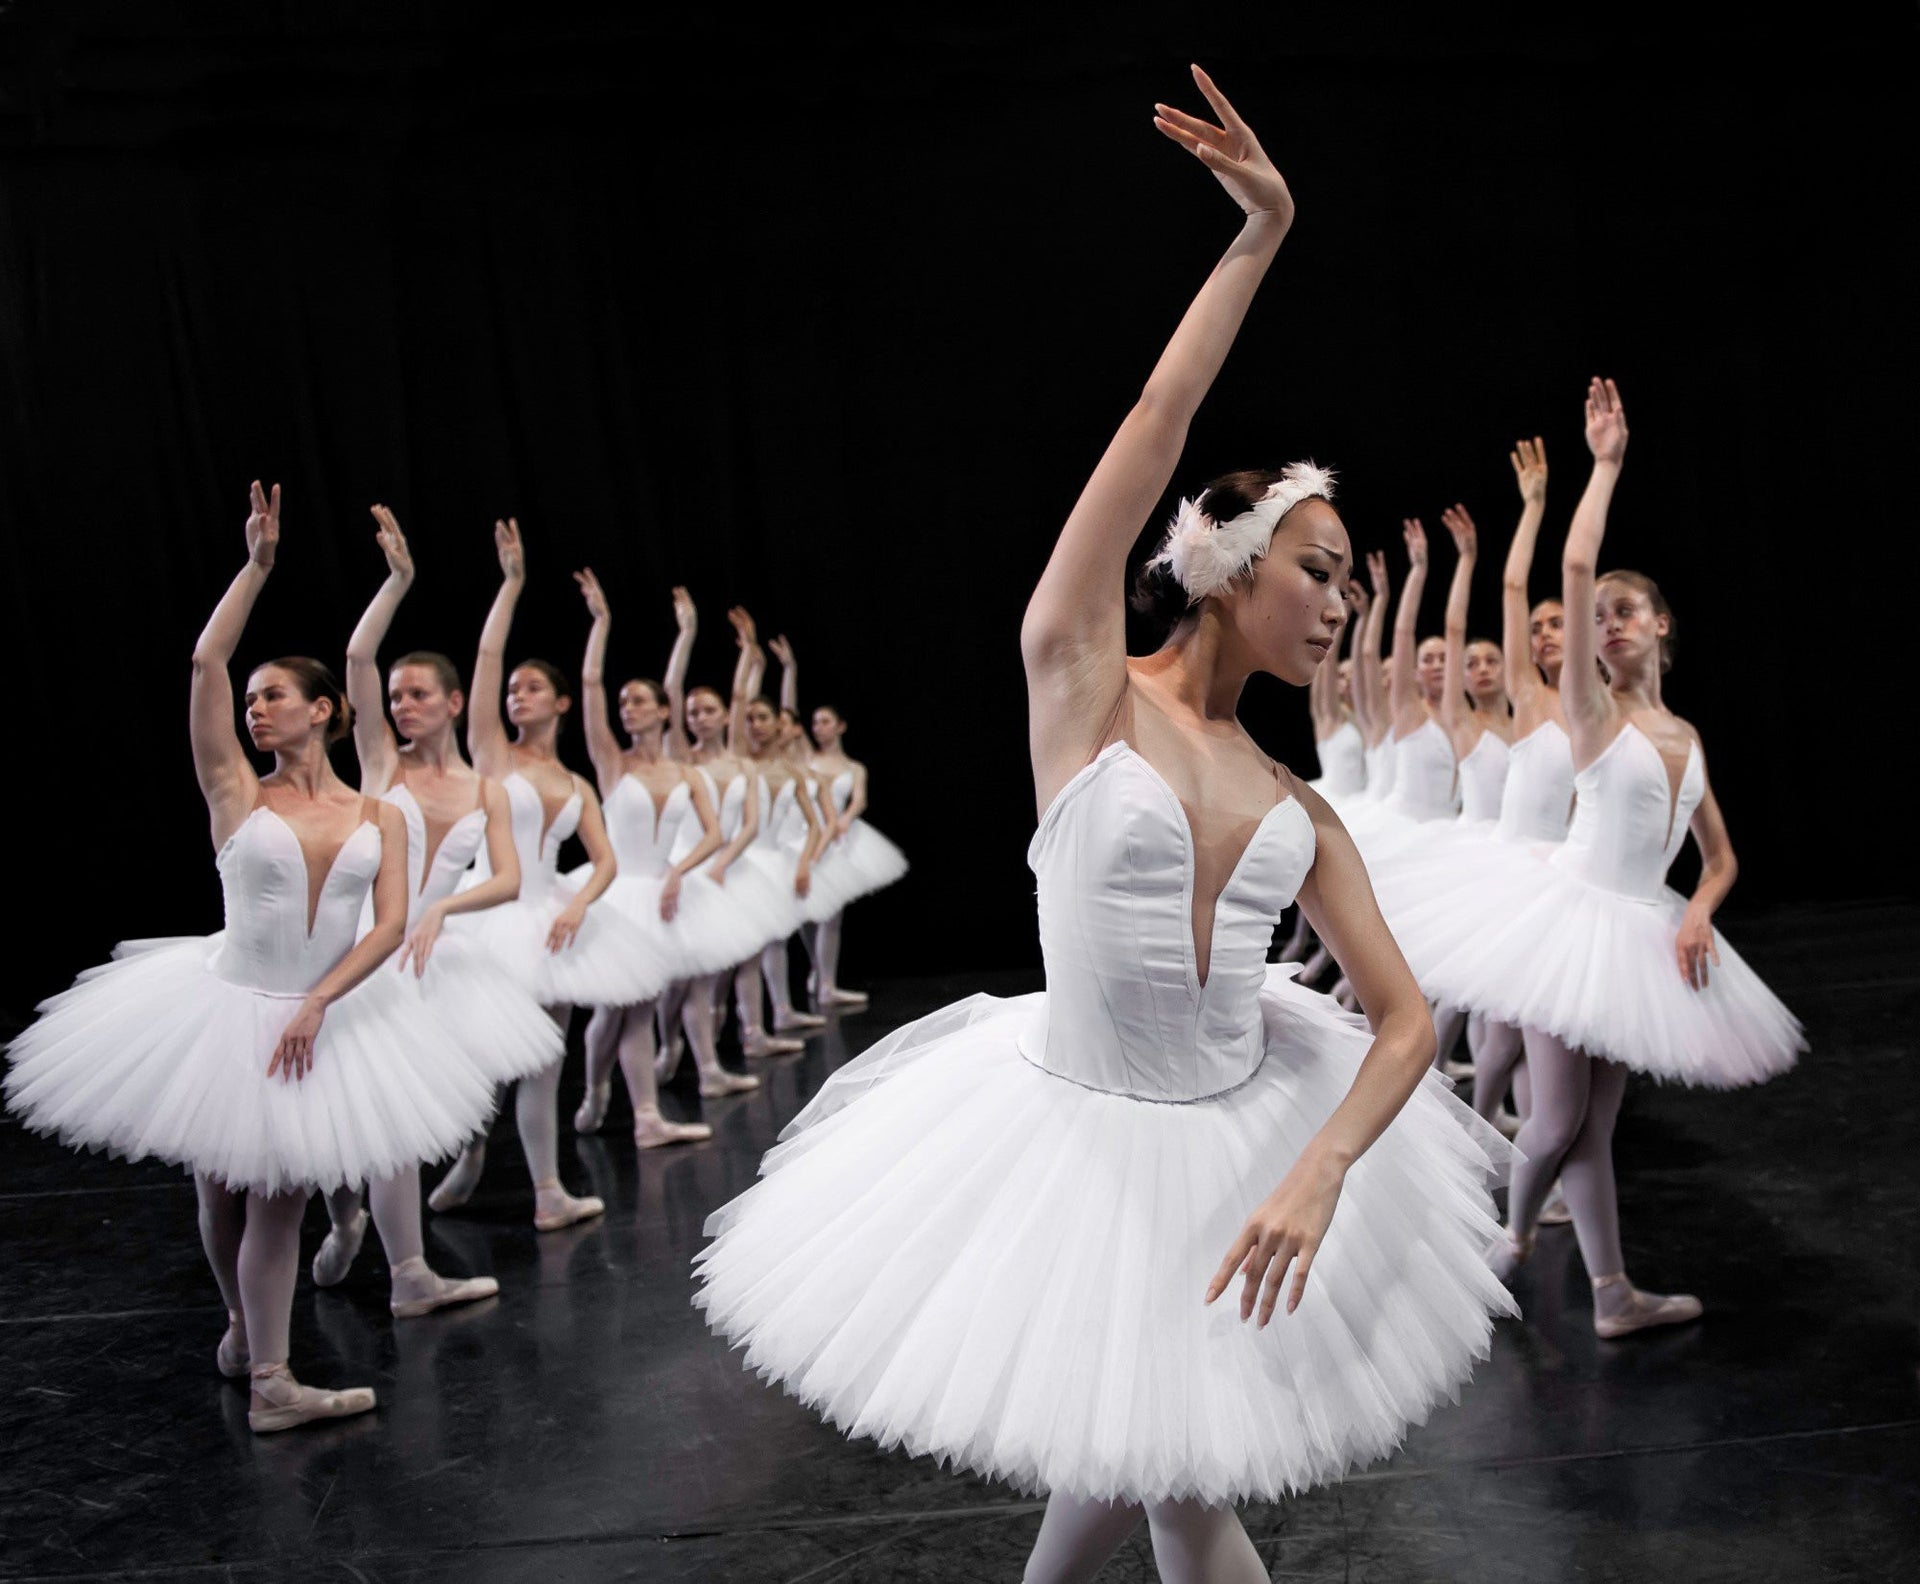 Why would it be far-fetched to wonder if hominins identified with birds? Israel Ballet performing Swan Lake